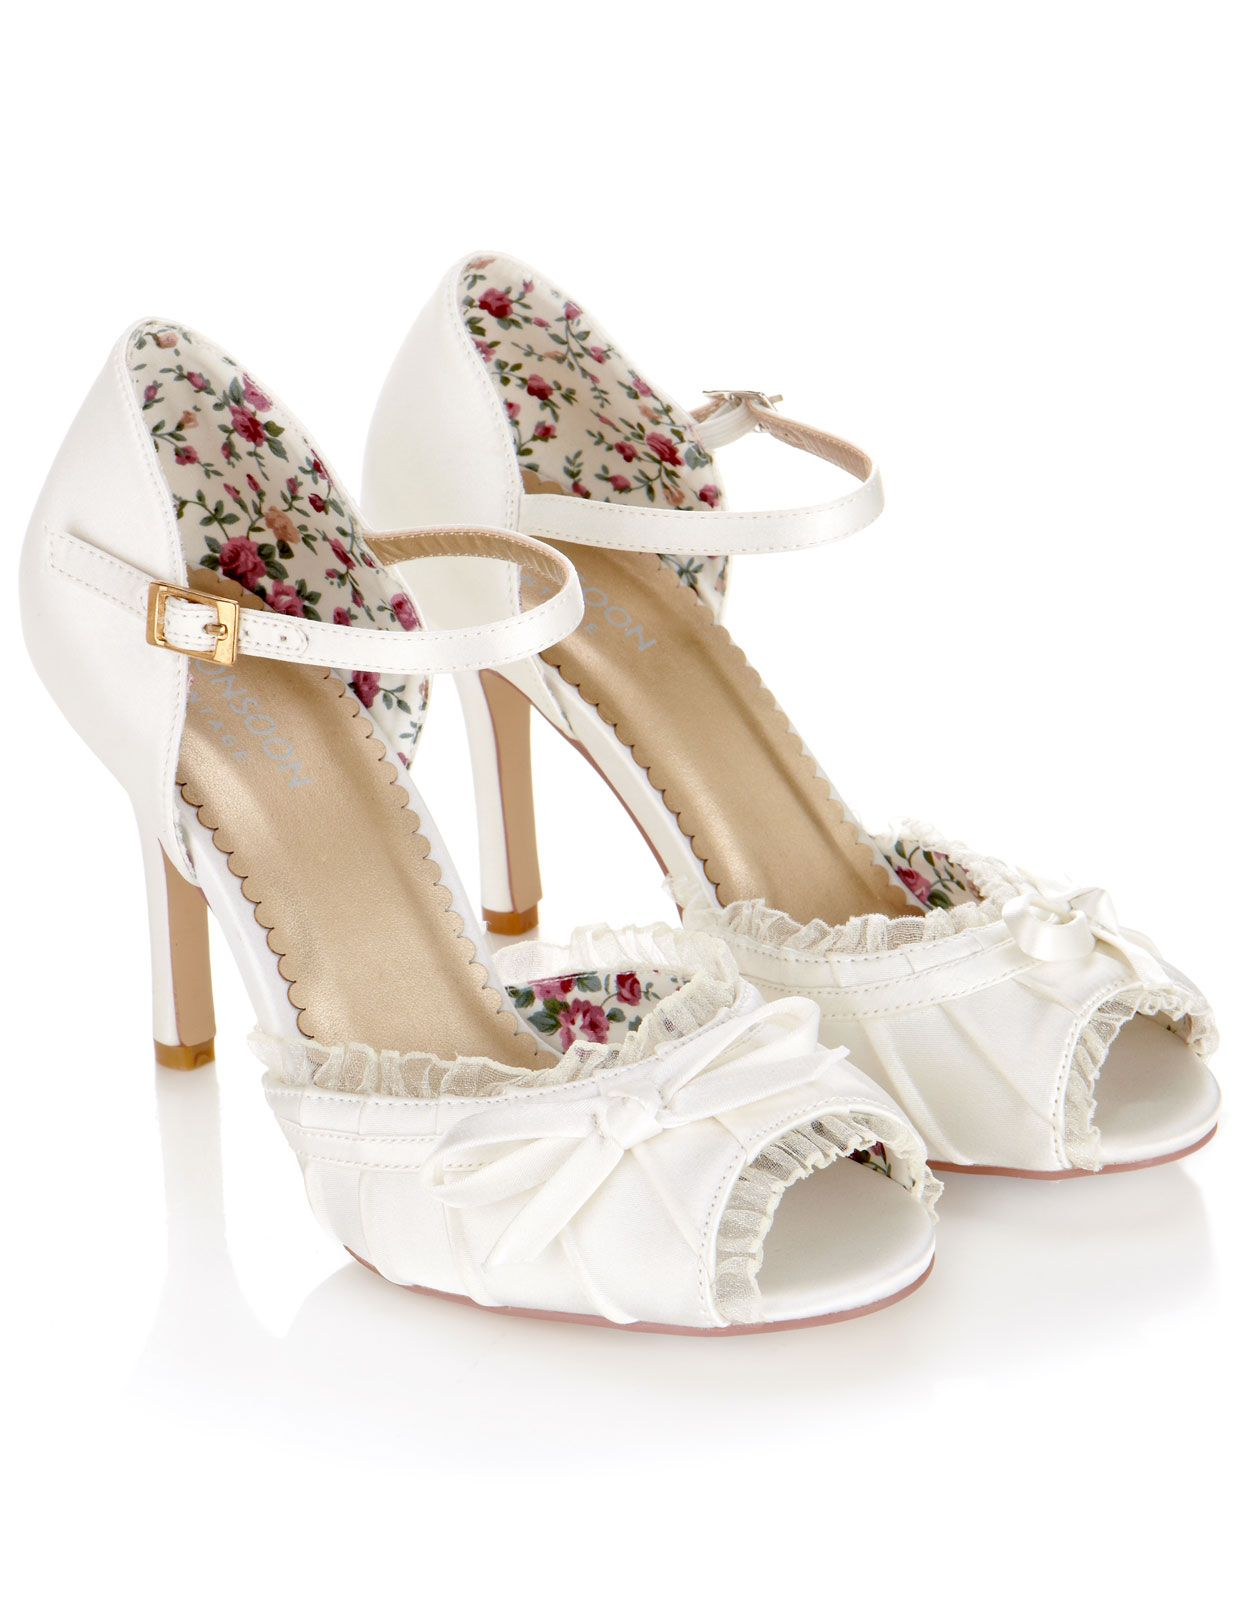 Colette Vintage Bow Shoe Monsoon Wedding Pinterest